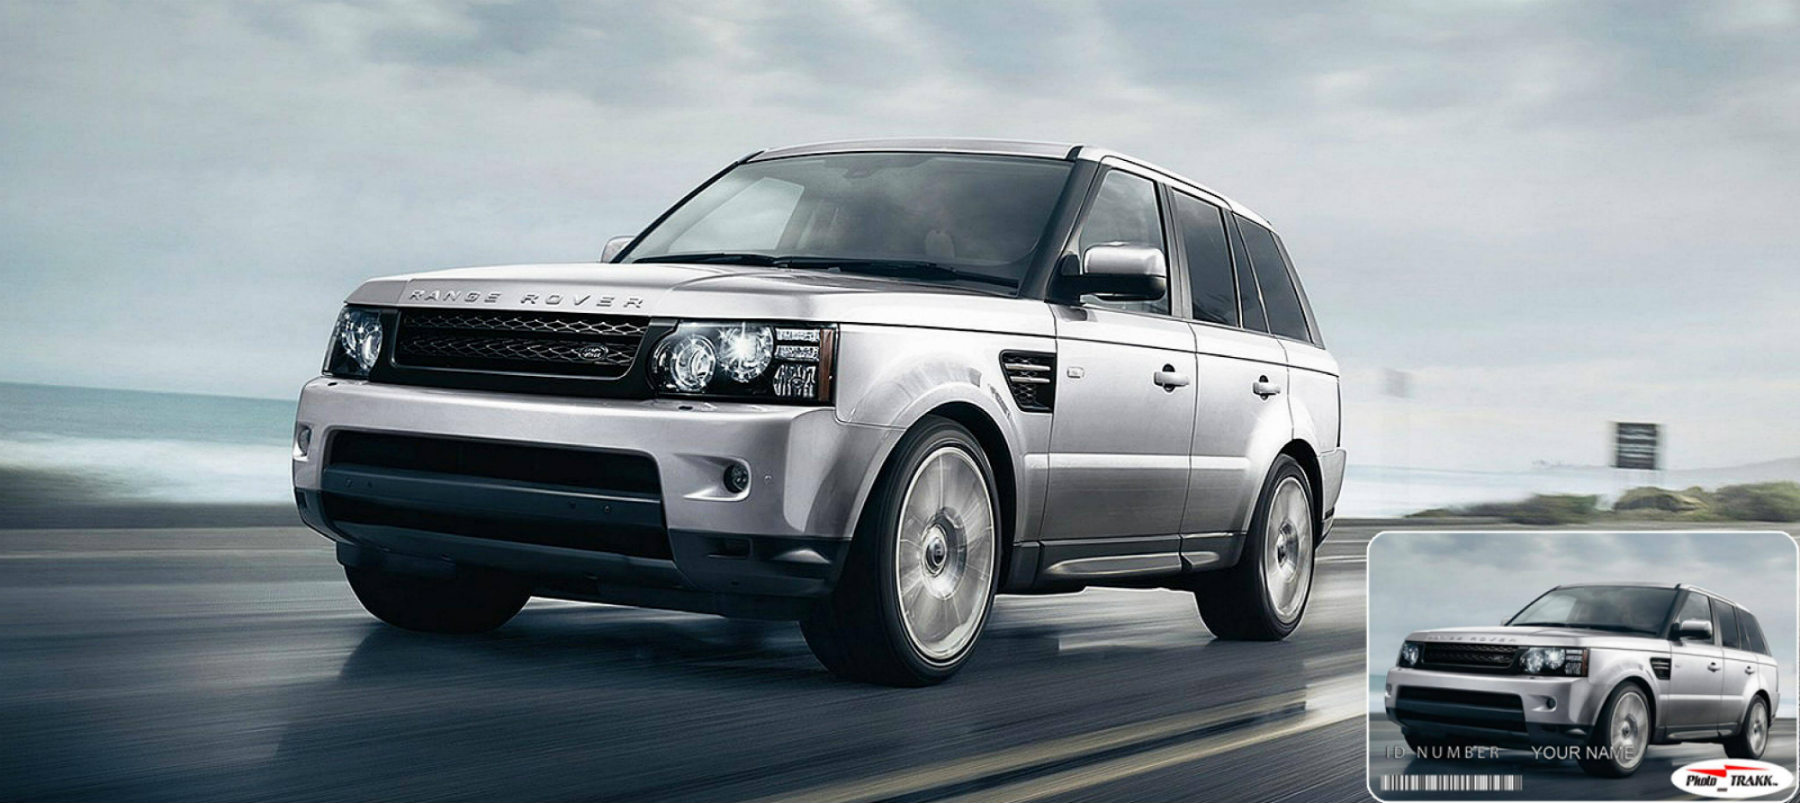 Range Rover SUV Silver Car with Motor Vehicle Photo Trakk Identification Card